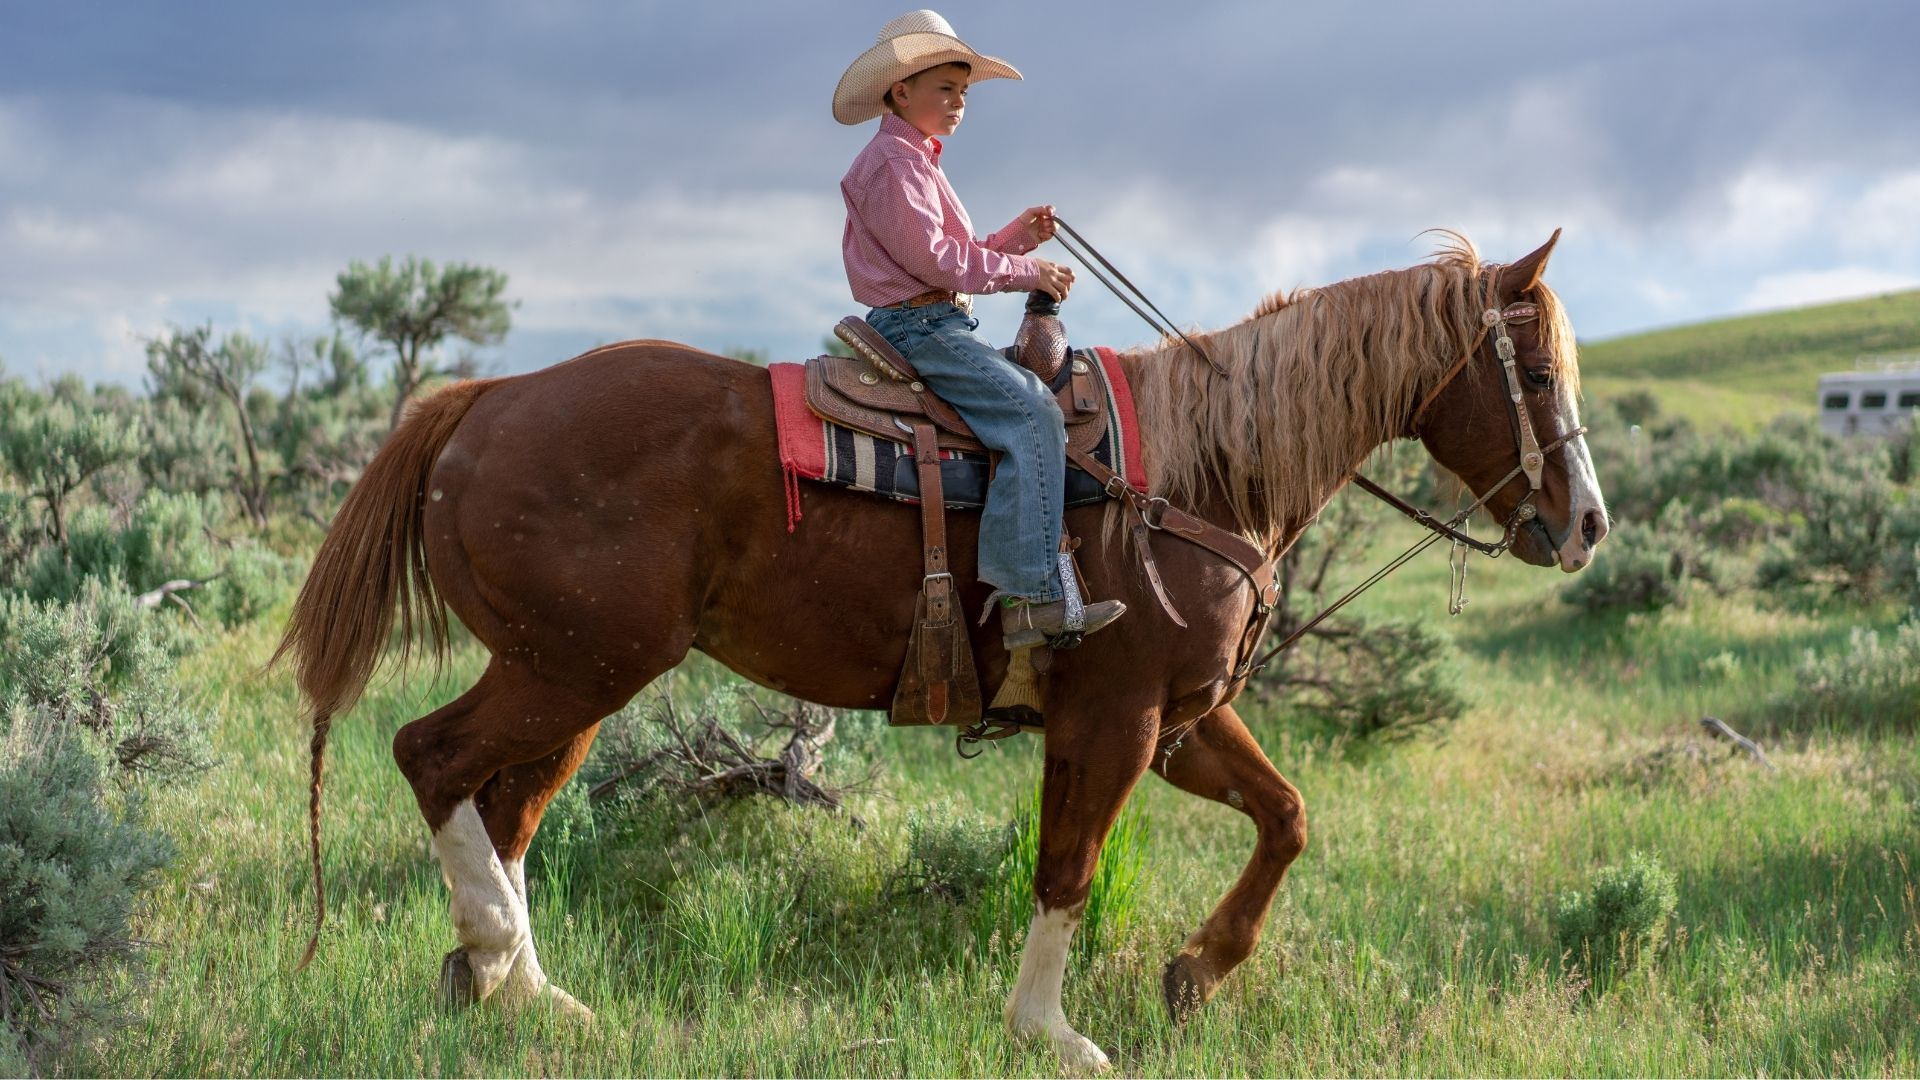 Picture of a boy riding a horse and wearing cowboy boots.